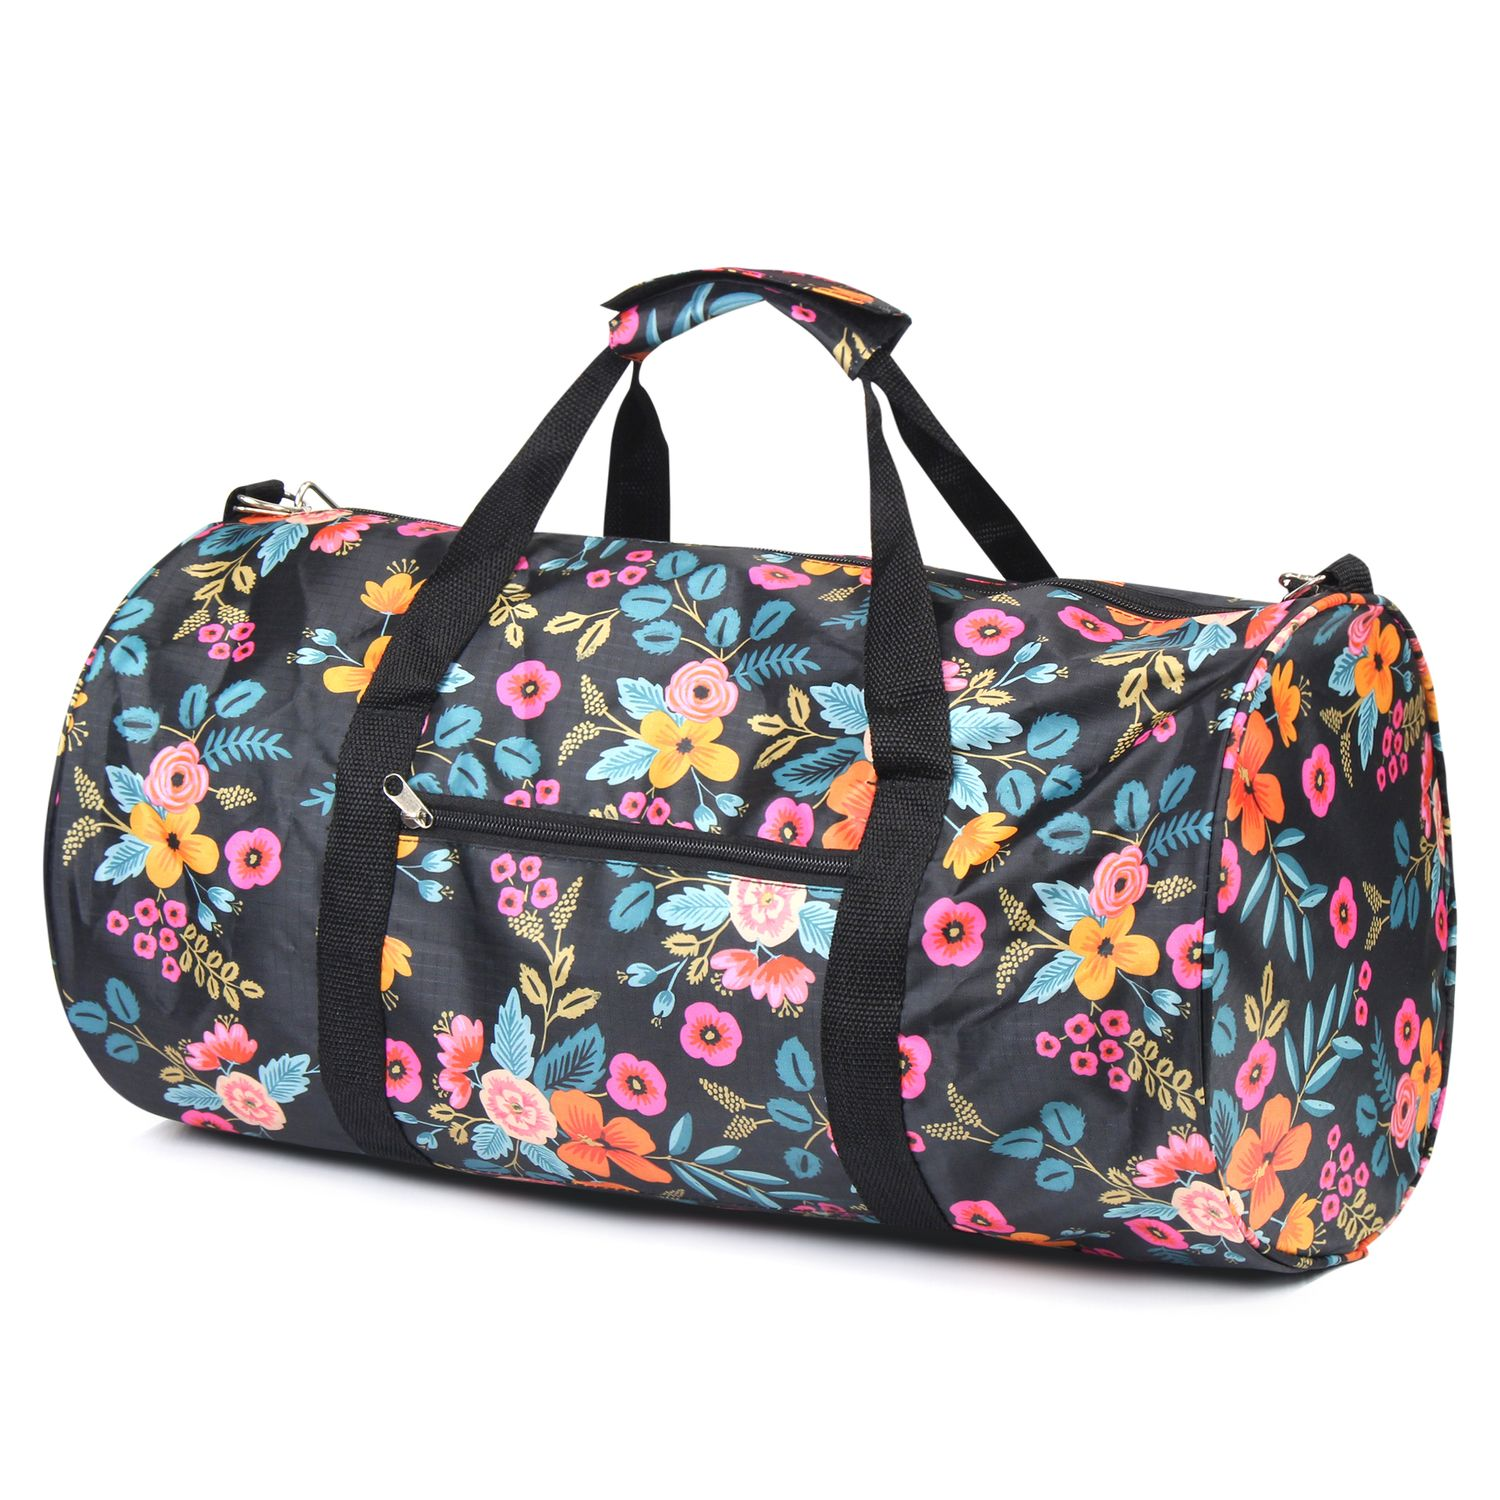 dd6c7c264365 Small Travel Bags images Small travel bags for ladies fenix toulouse  handball jpeg